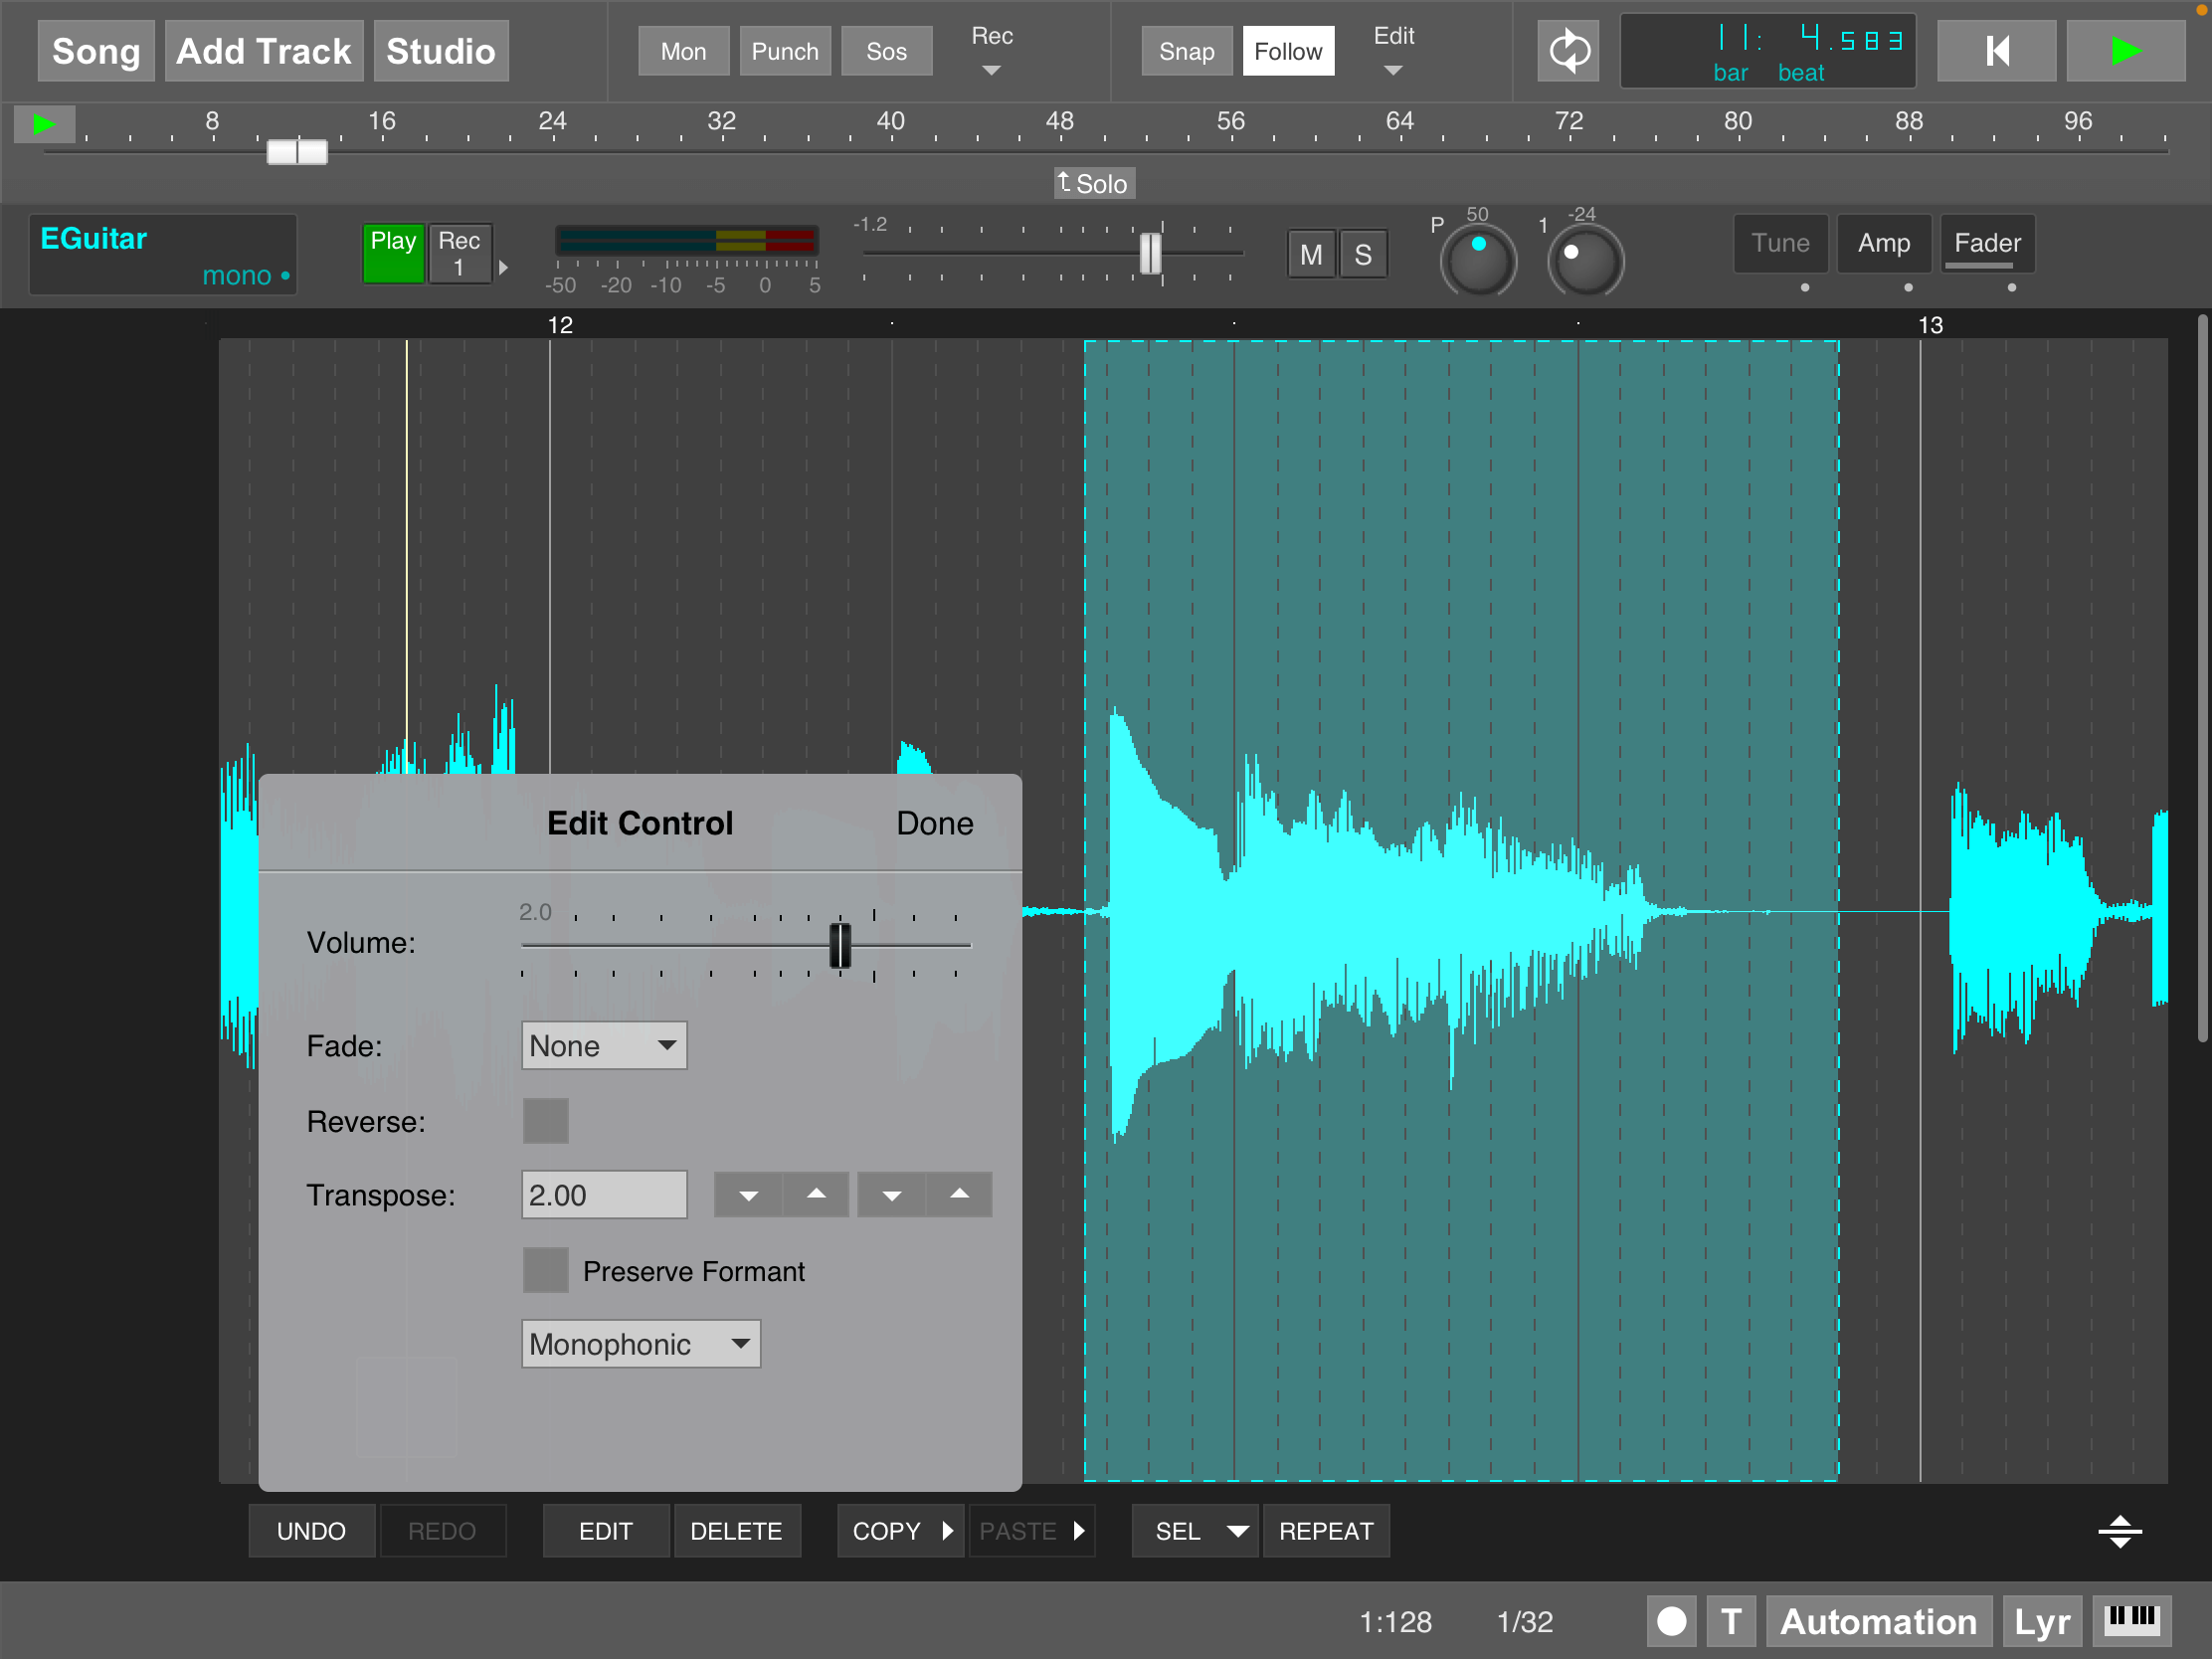 MultitrackStudio for iPad - Audio pitch shifting in track editor